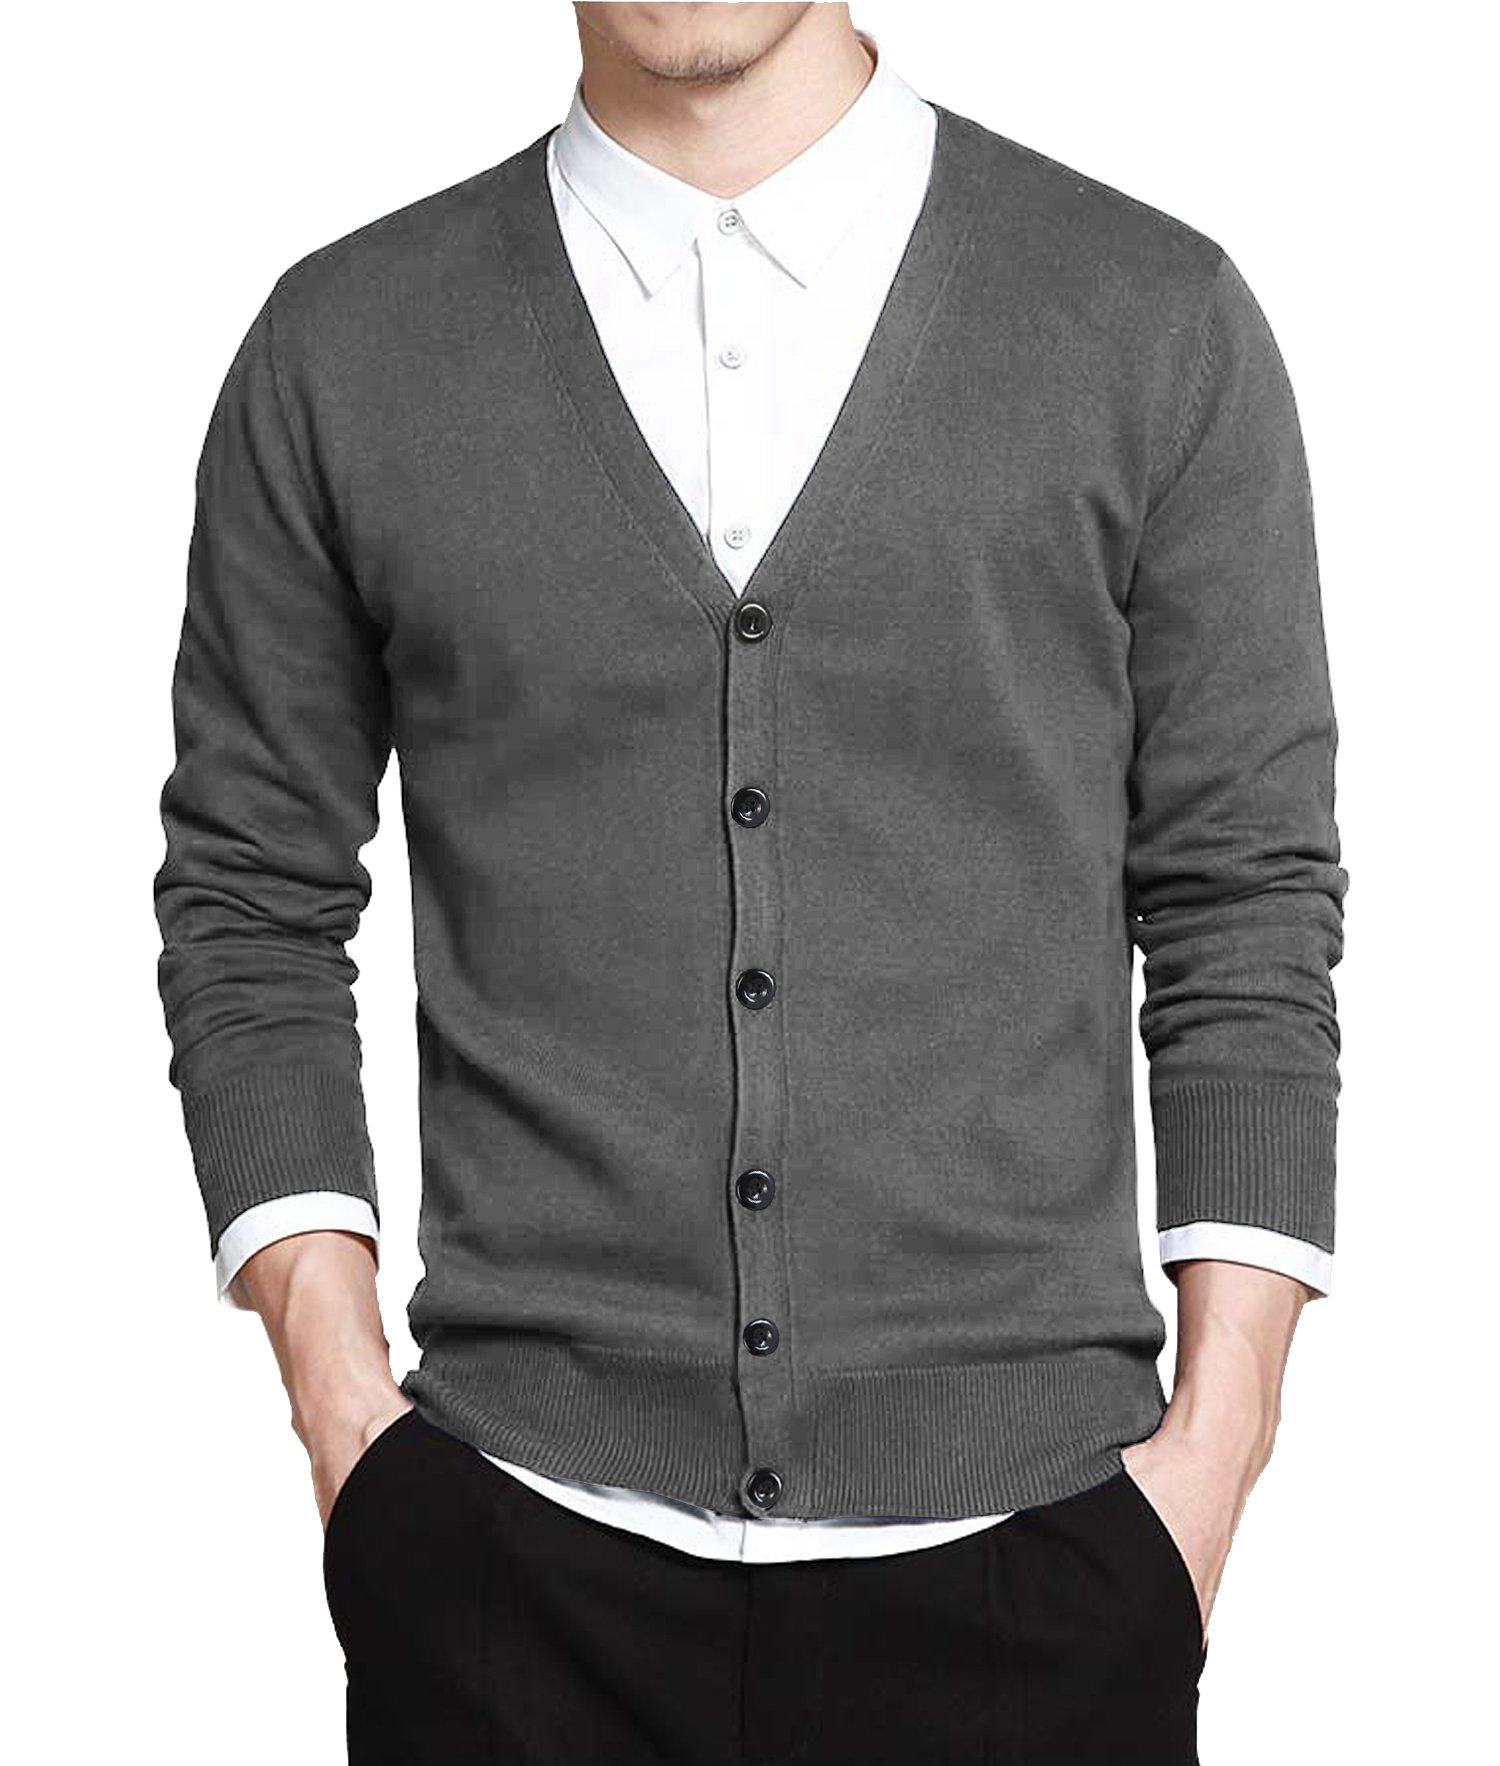 Coofandy Men's Basic Slim Fit Cardigan Sweater Casual V Neck Button Down Knitwear,X-Large,Grey